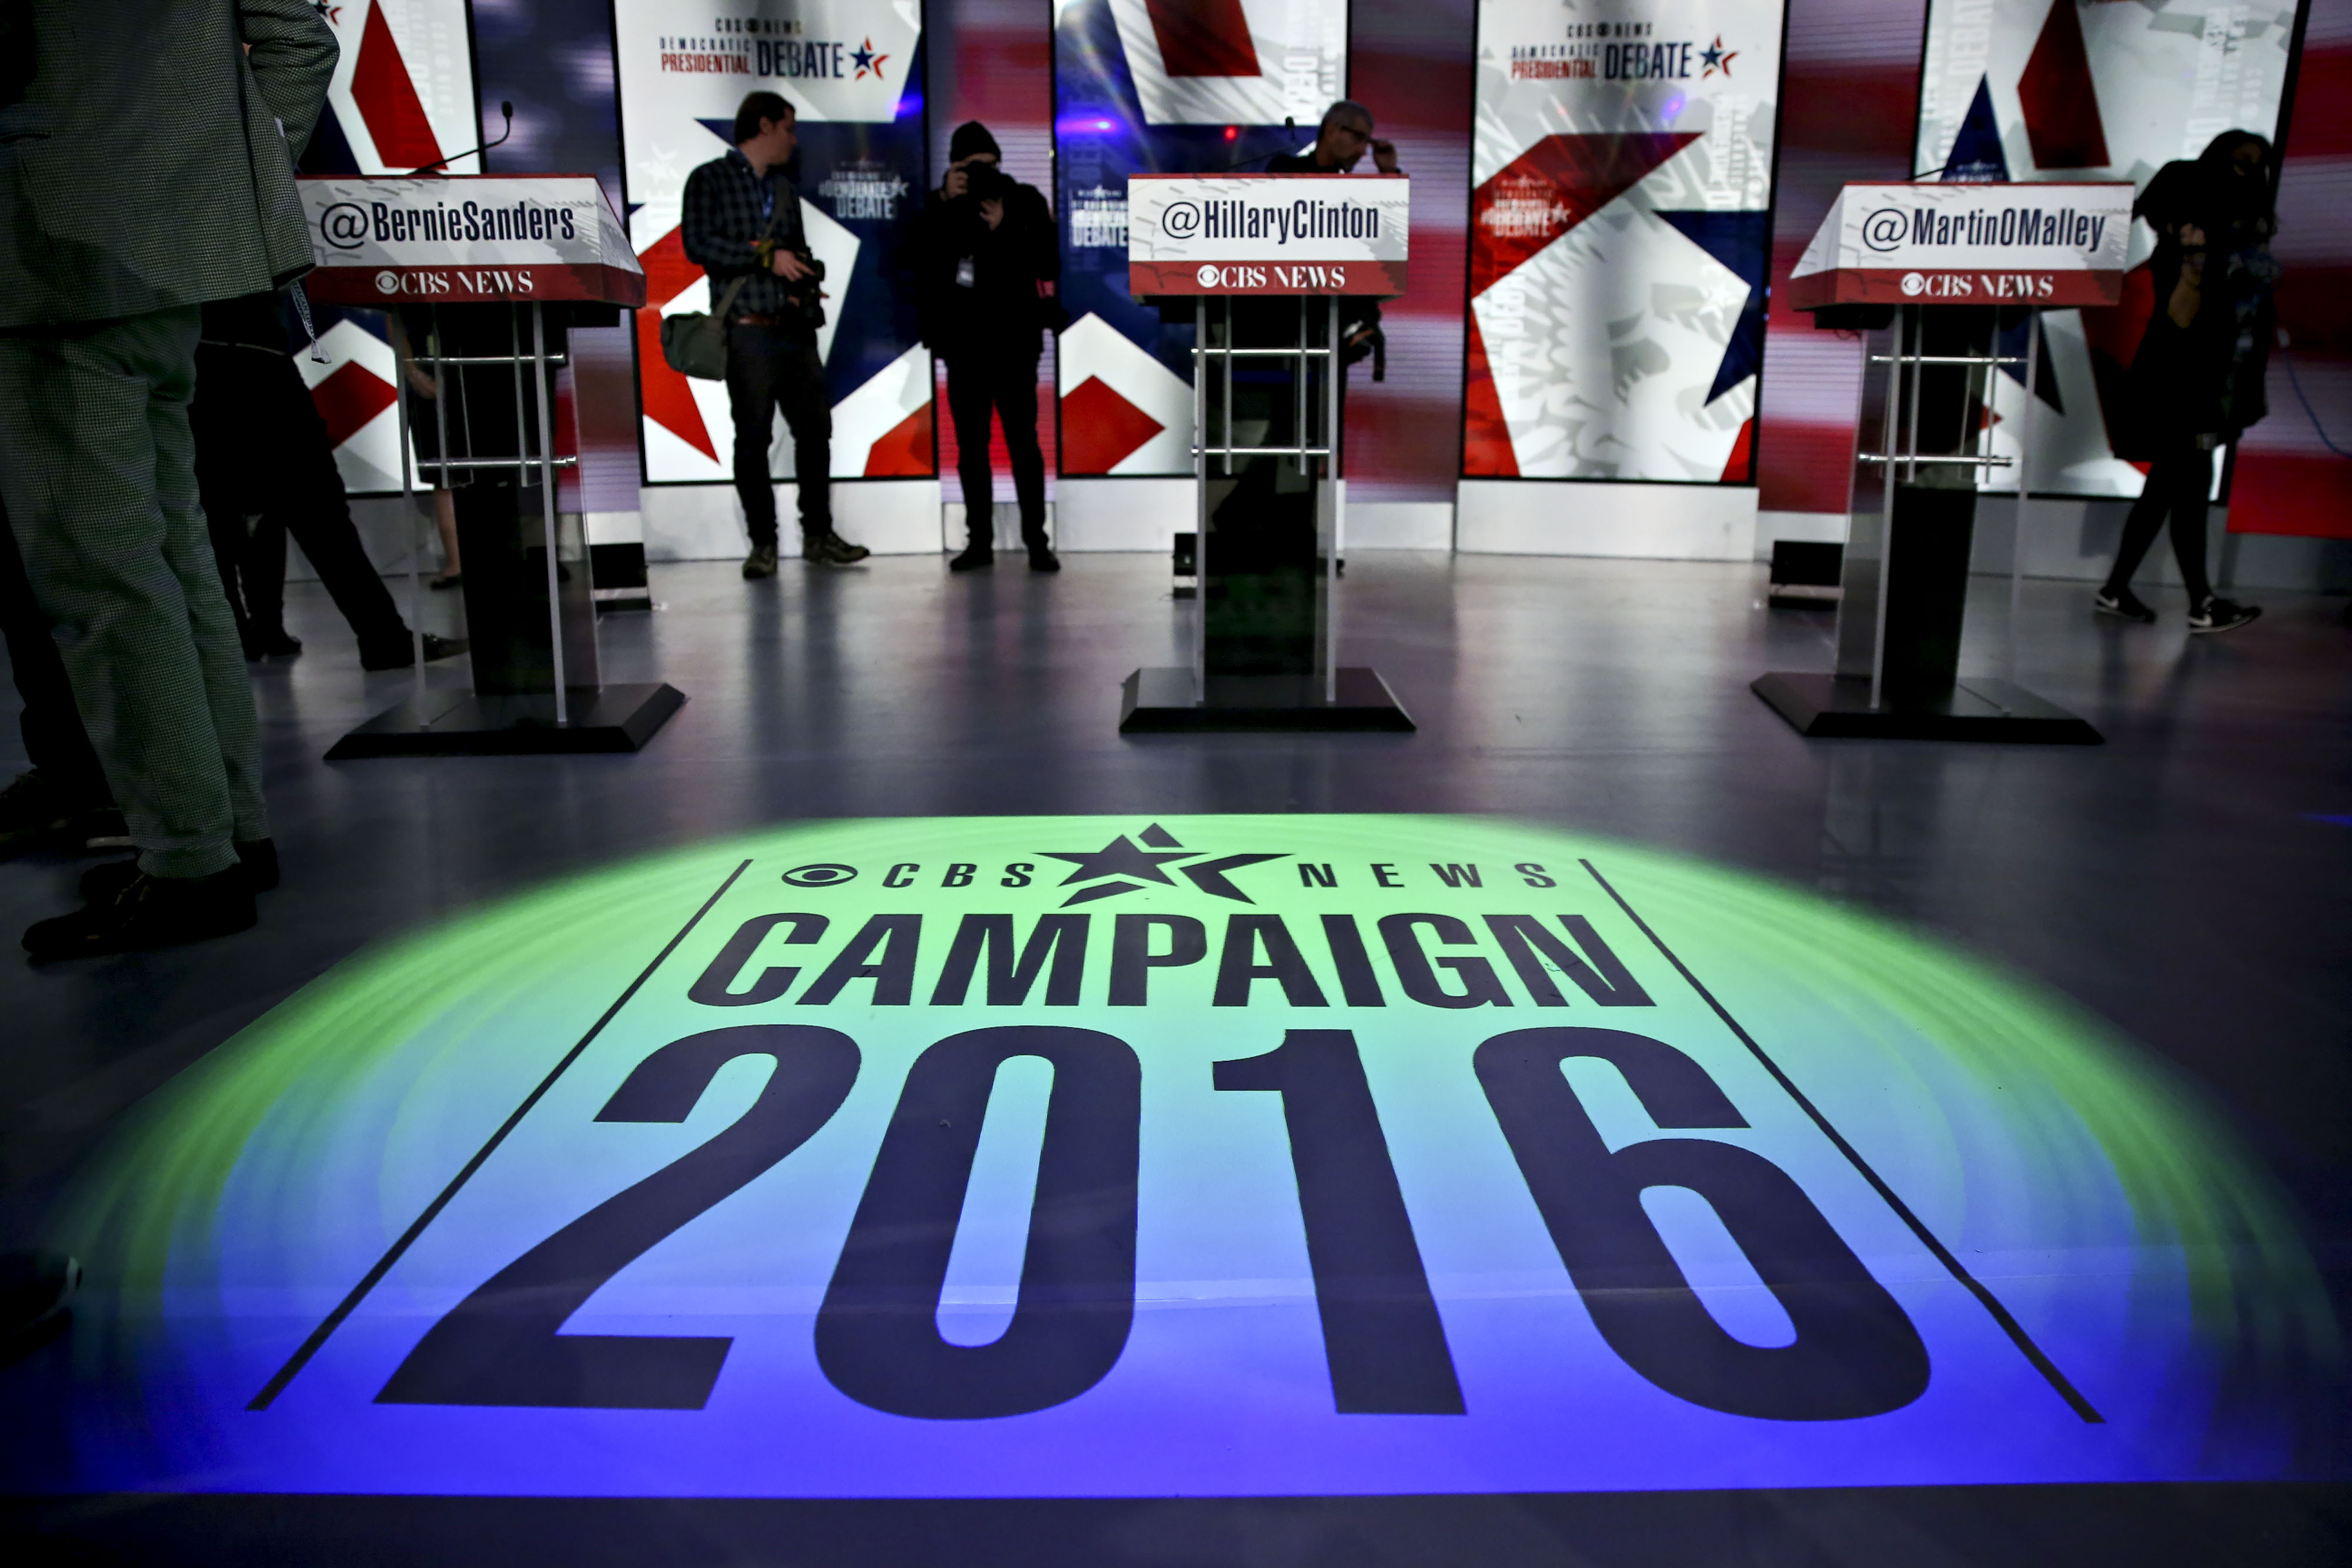 The First Debate After the Paris Attacks Was Bad